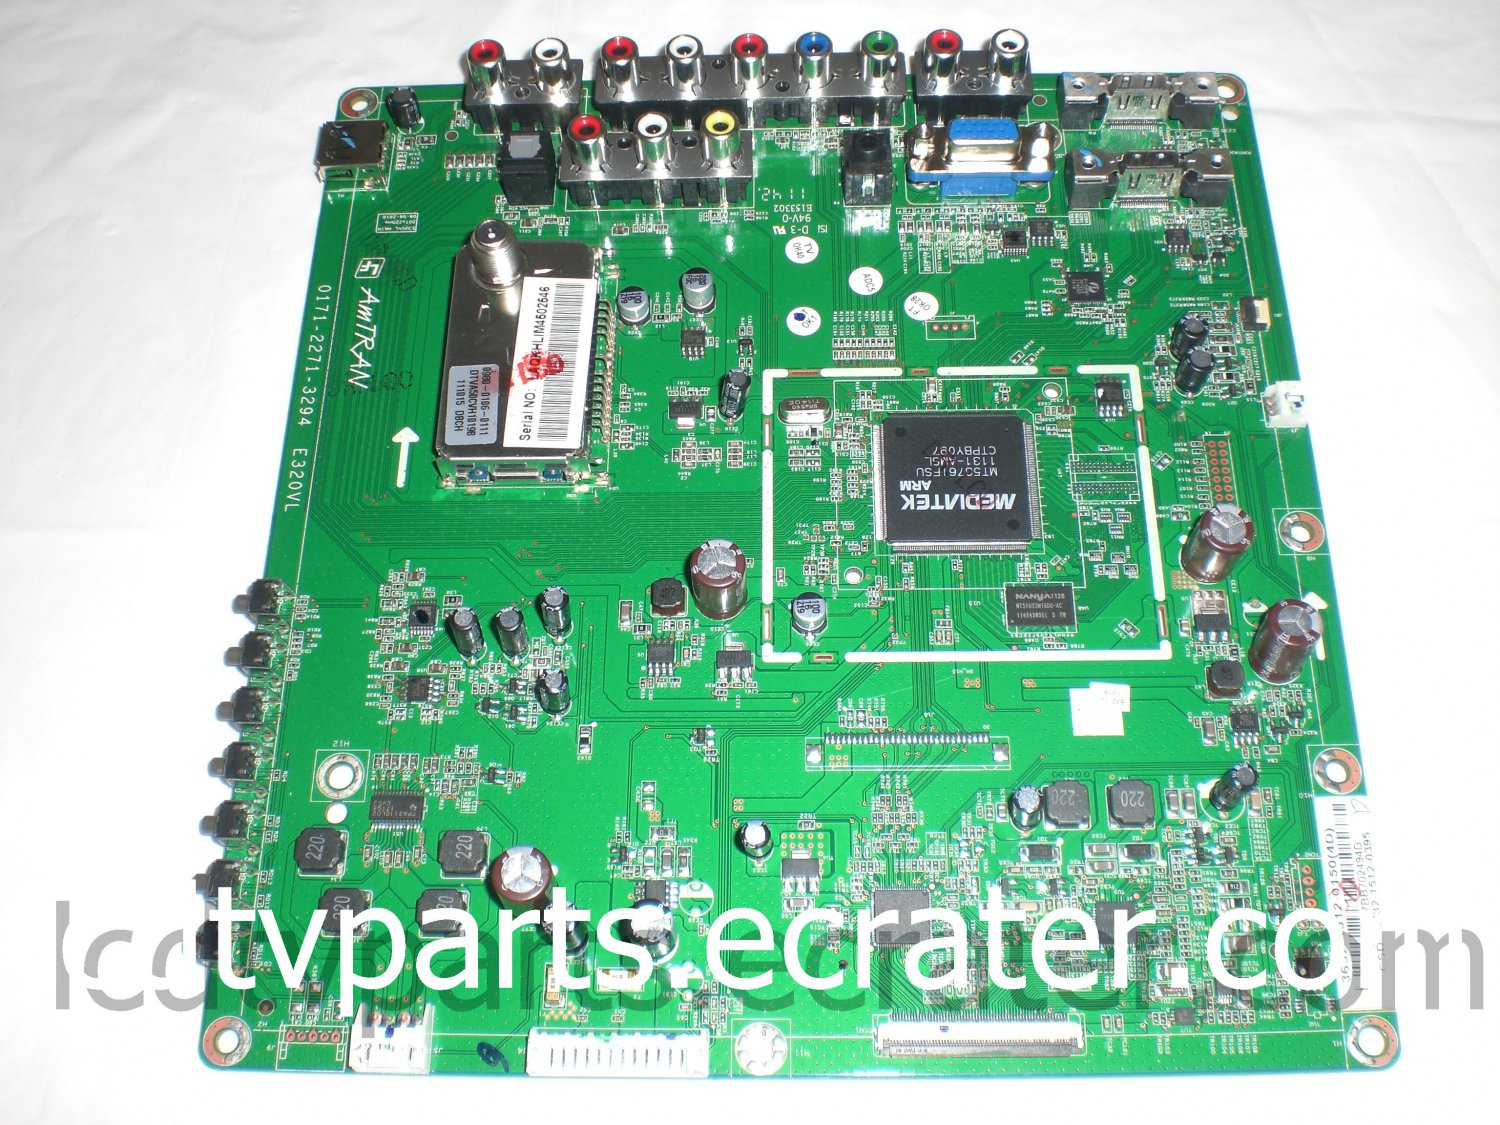 3632-1512-0395, 0171-2271-3294, 3632-1512-0150(4D),3632-1512-0395, Main Board for VIZIO E321VL